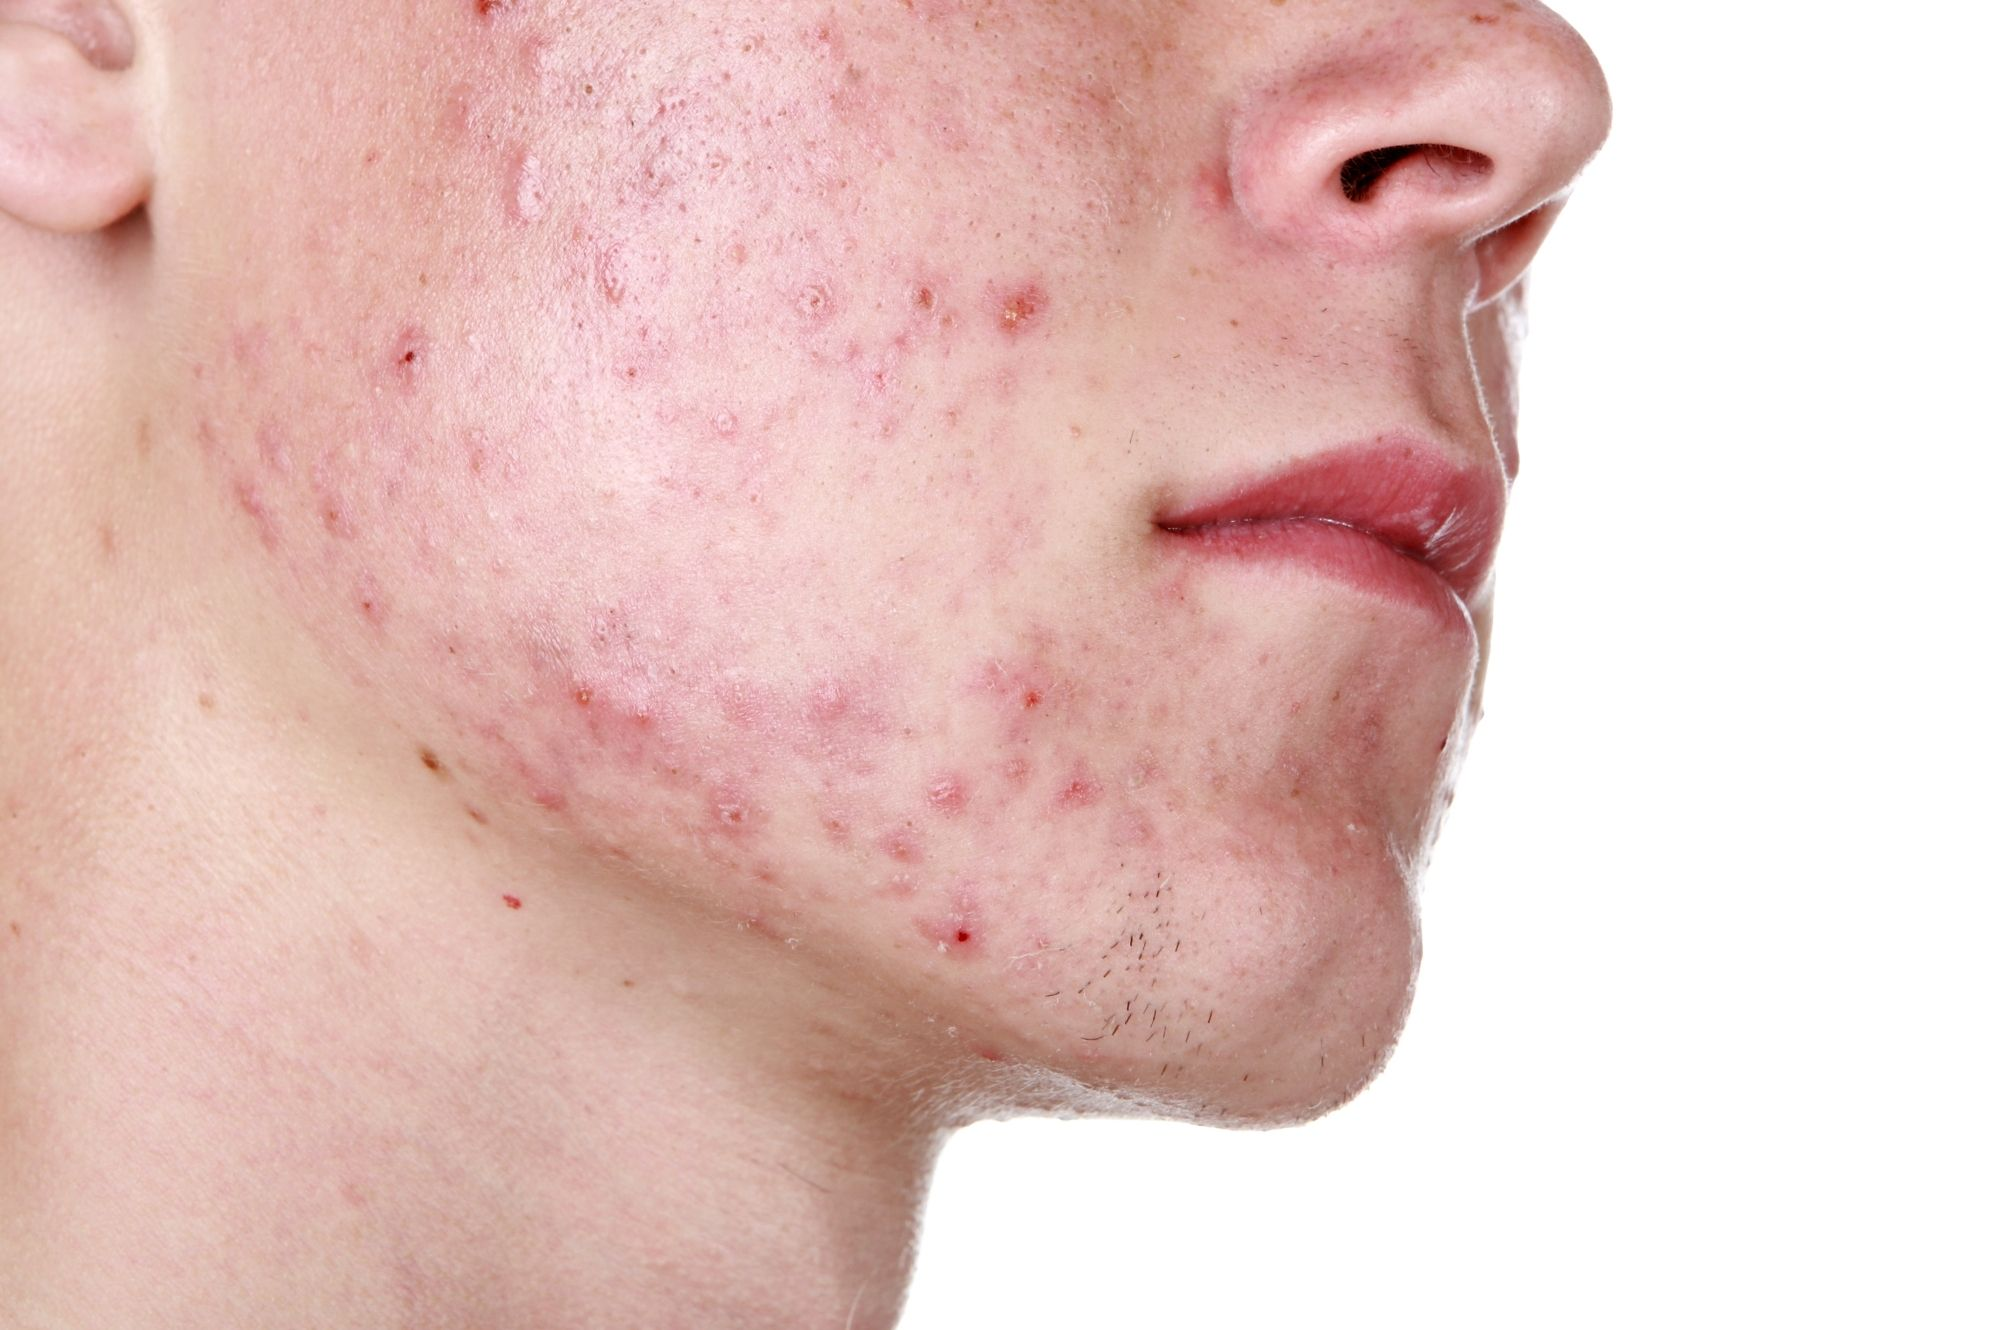 Buy Azelex Online For Acne